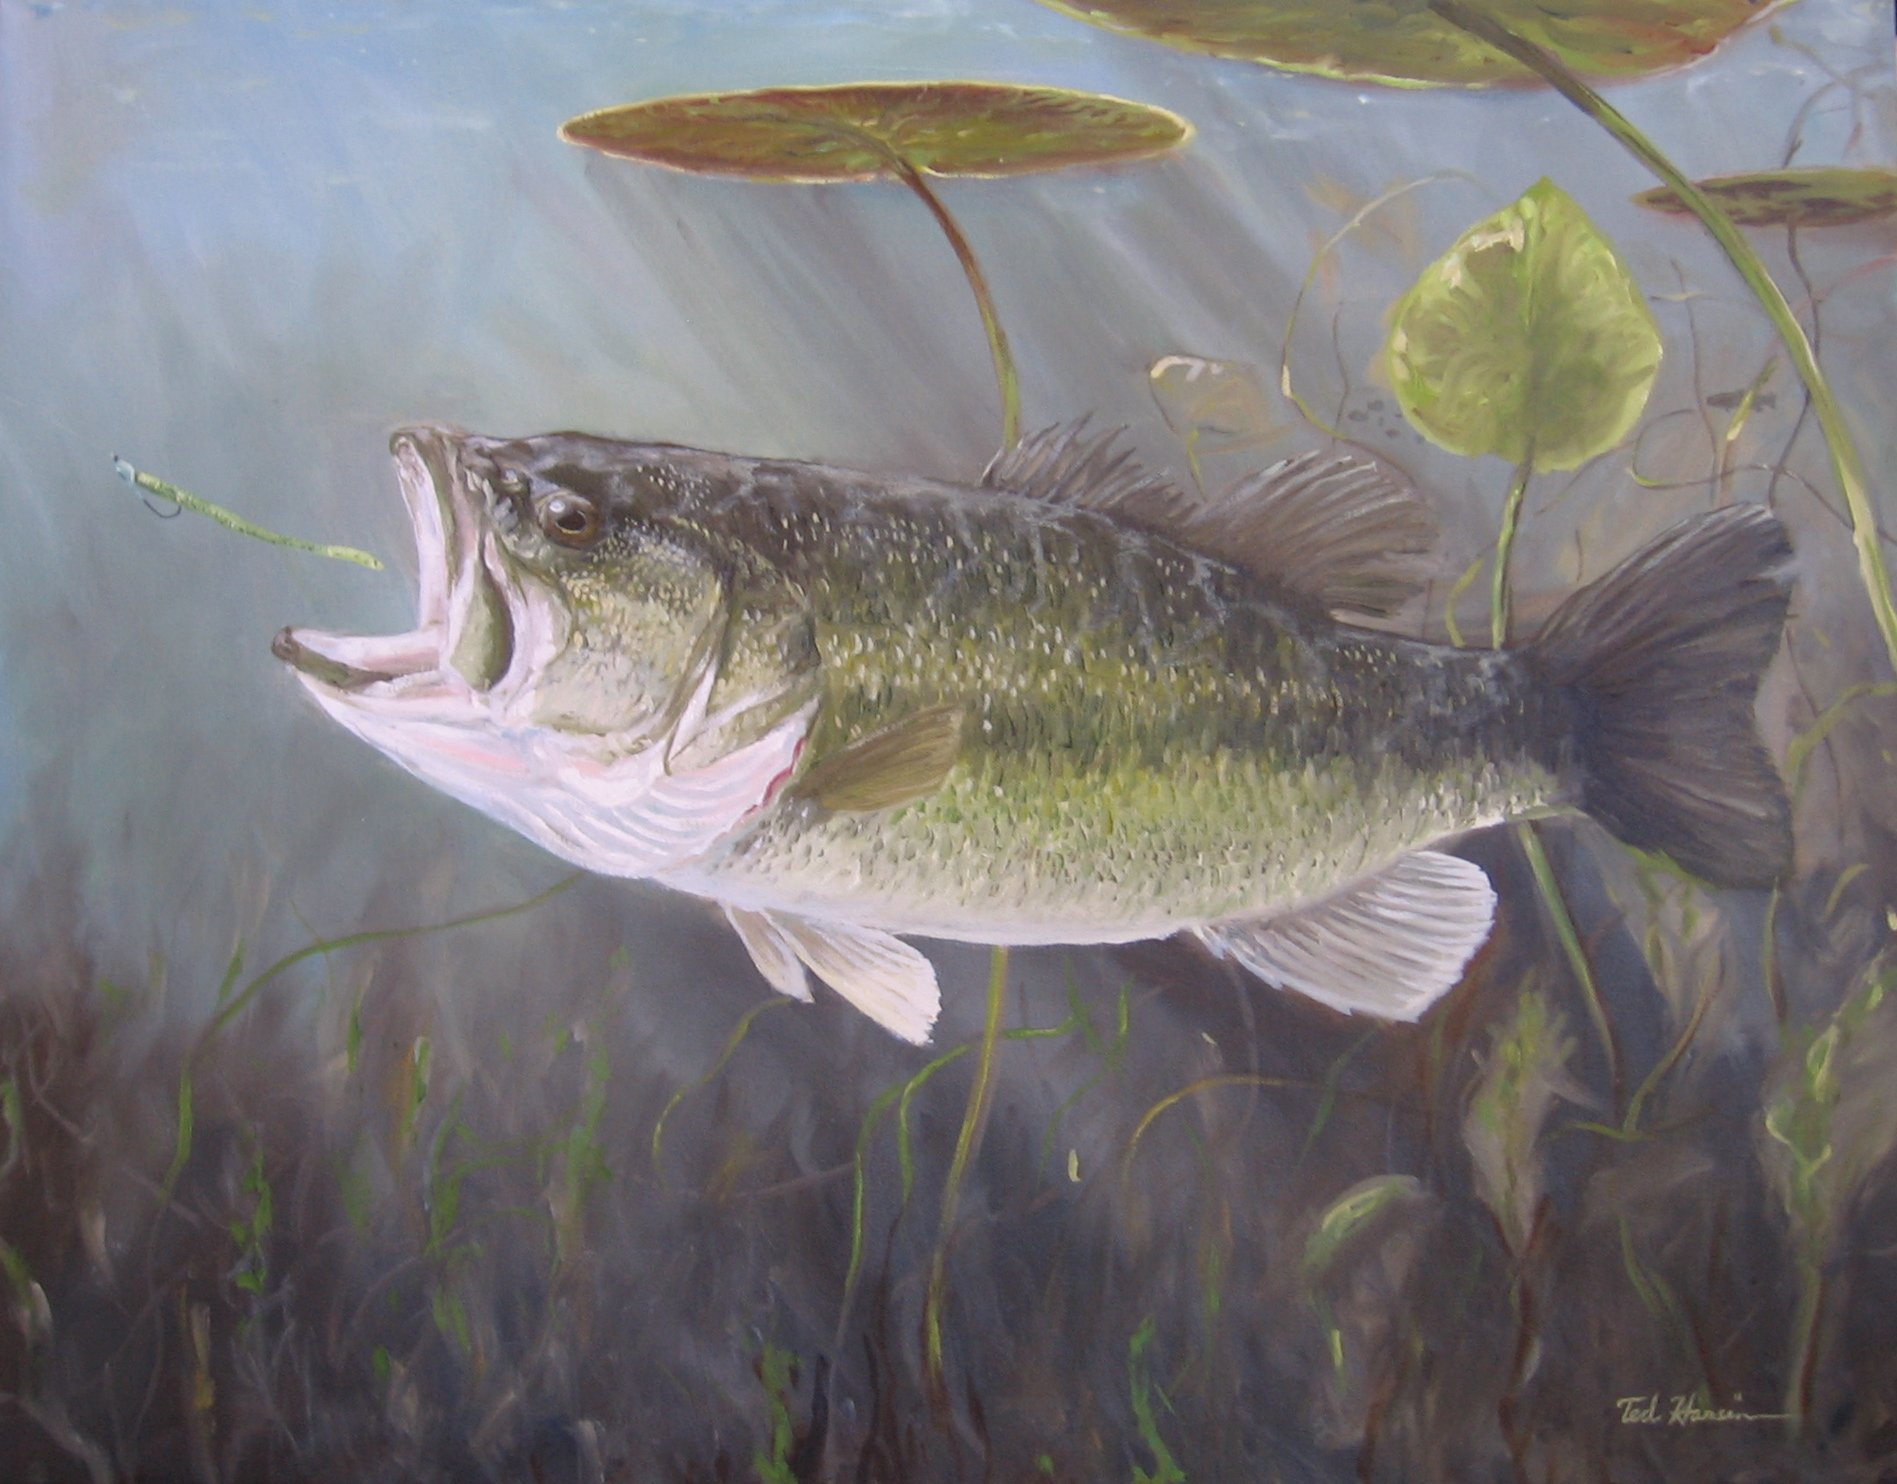 Free Download Largemouth Bass Painting Fine Art Fine Fishing 1897x1484 For Your Desktop Mobile Tablet Explore 49 Big Bass Wallpaper Black Bass Wallpaper Bass Boat Wallpaper For Computer Bass